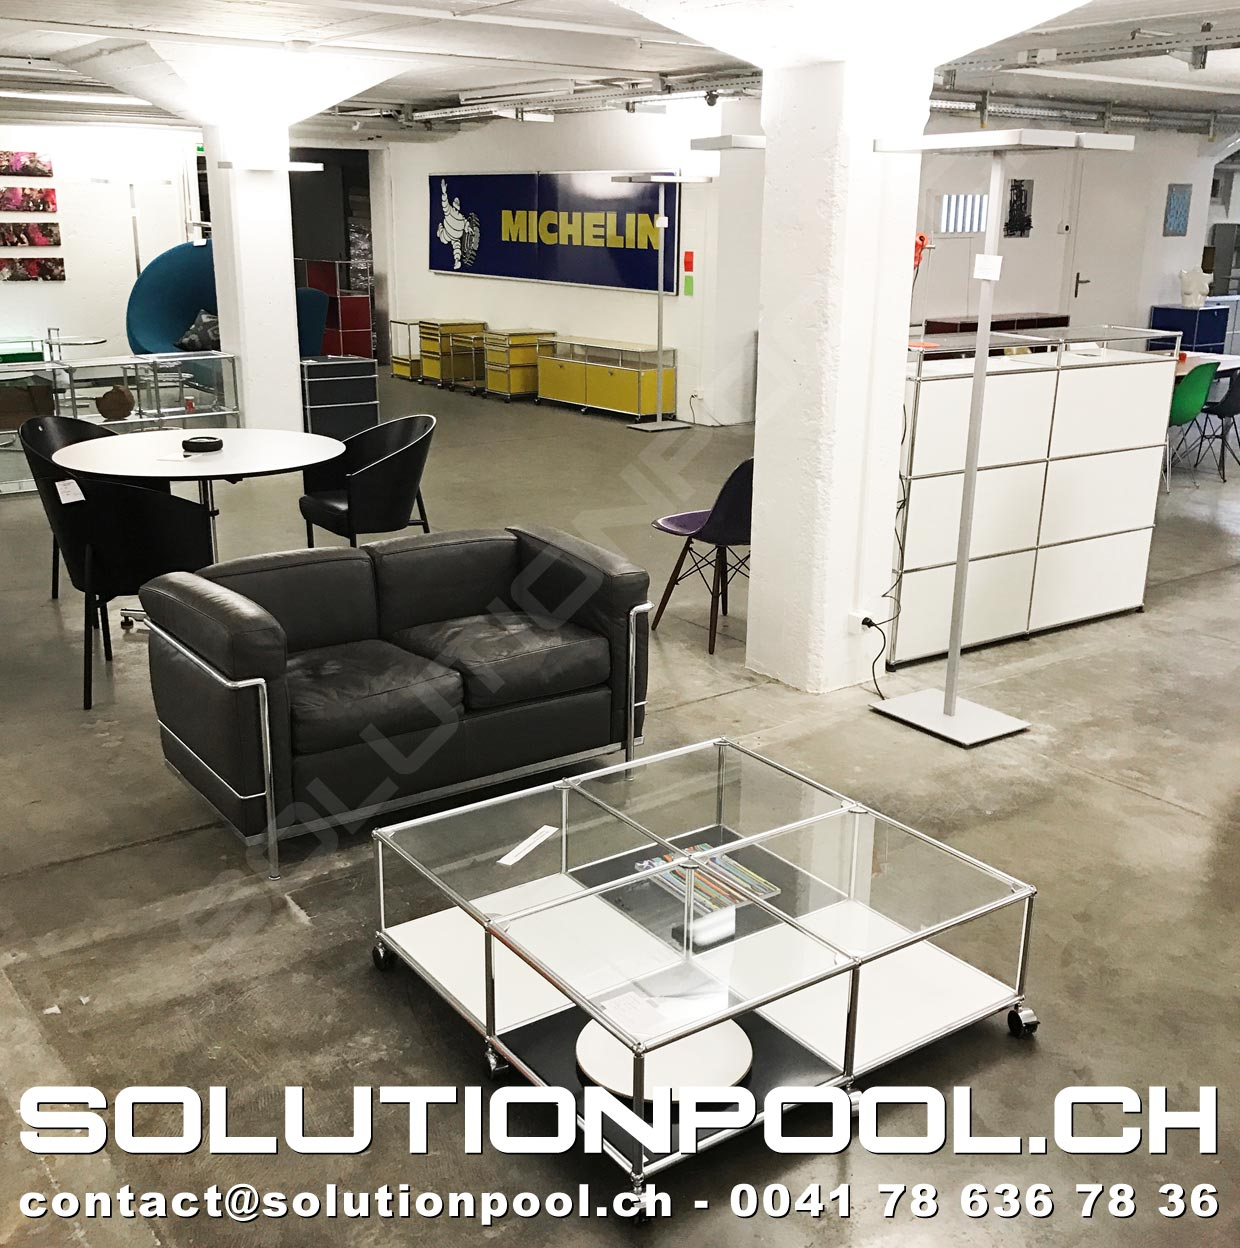 Showroom solutionpool first class second hand for home for Gebrauchte buromobel ankauf